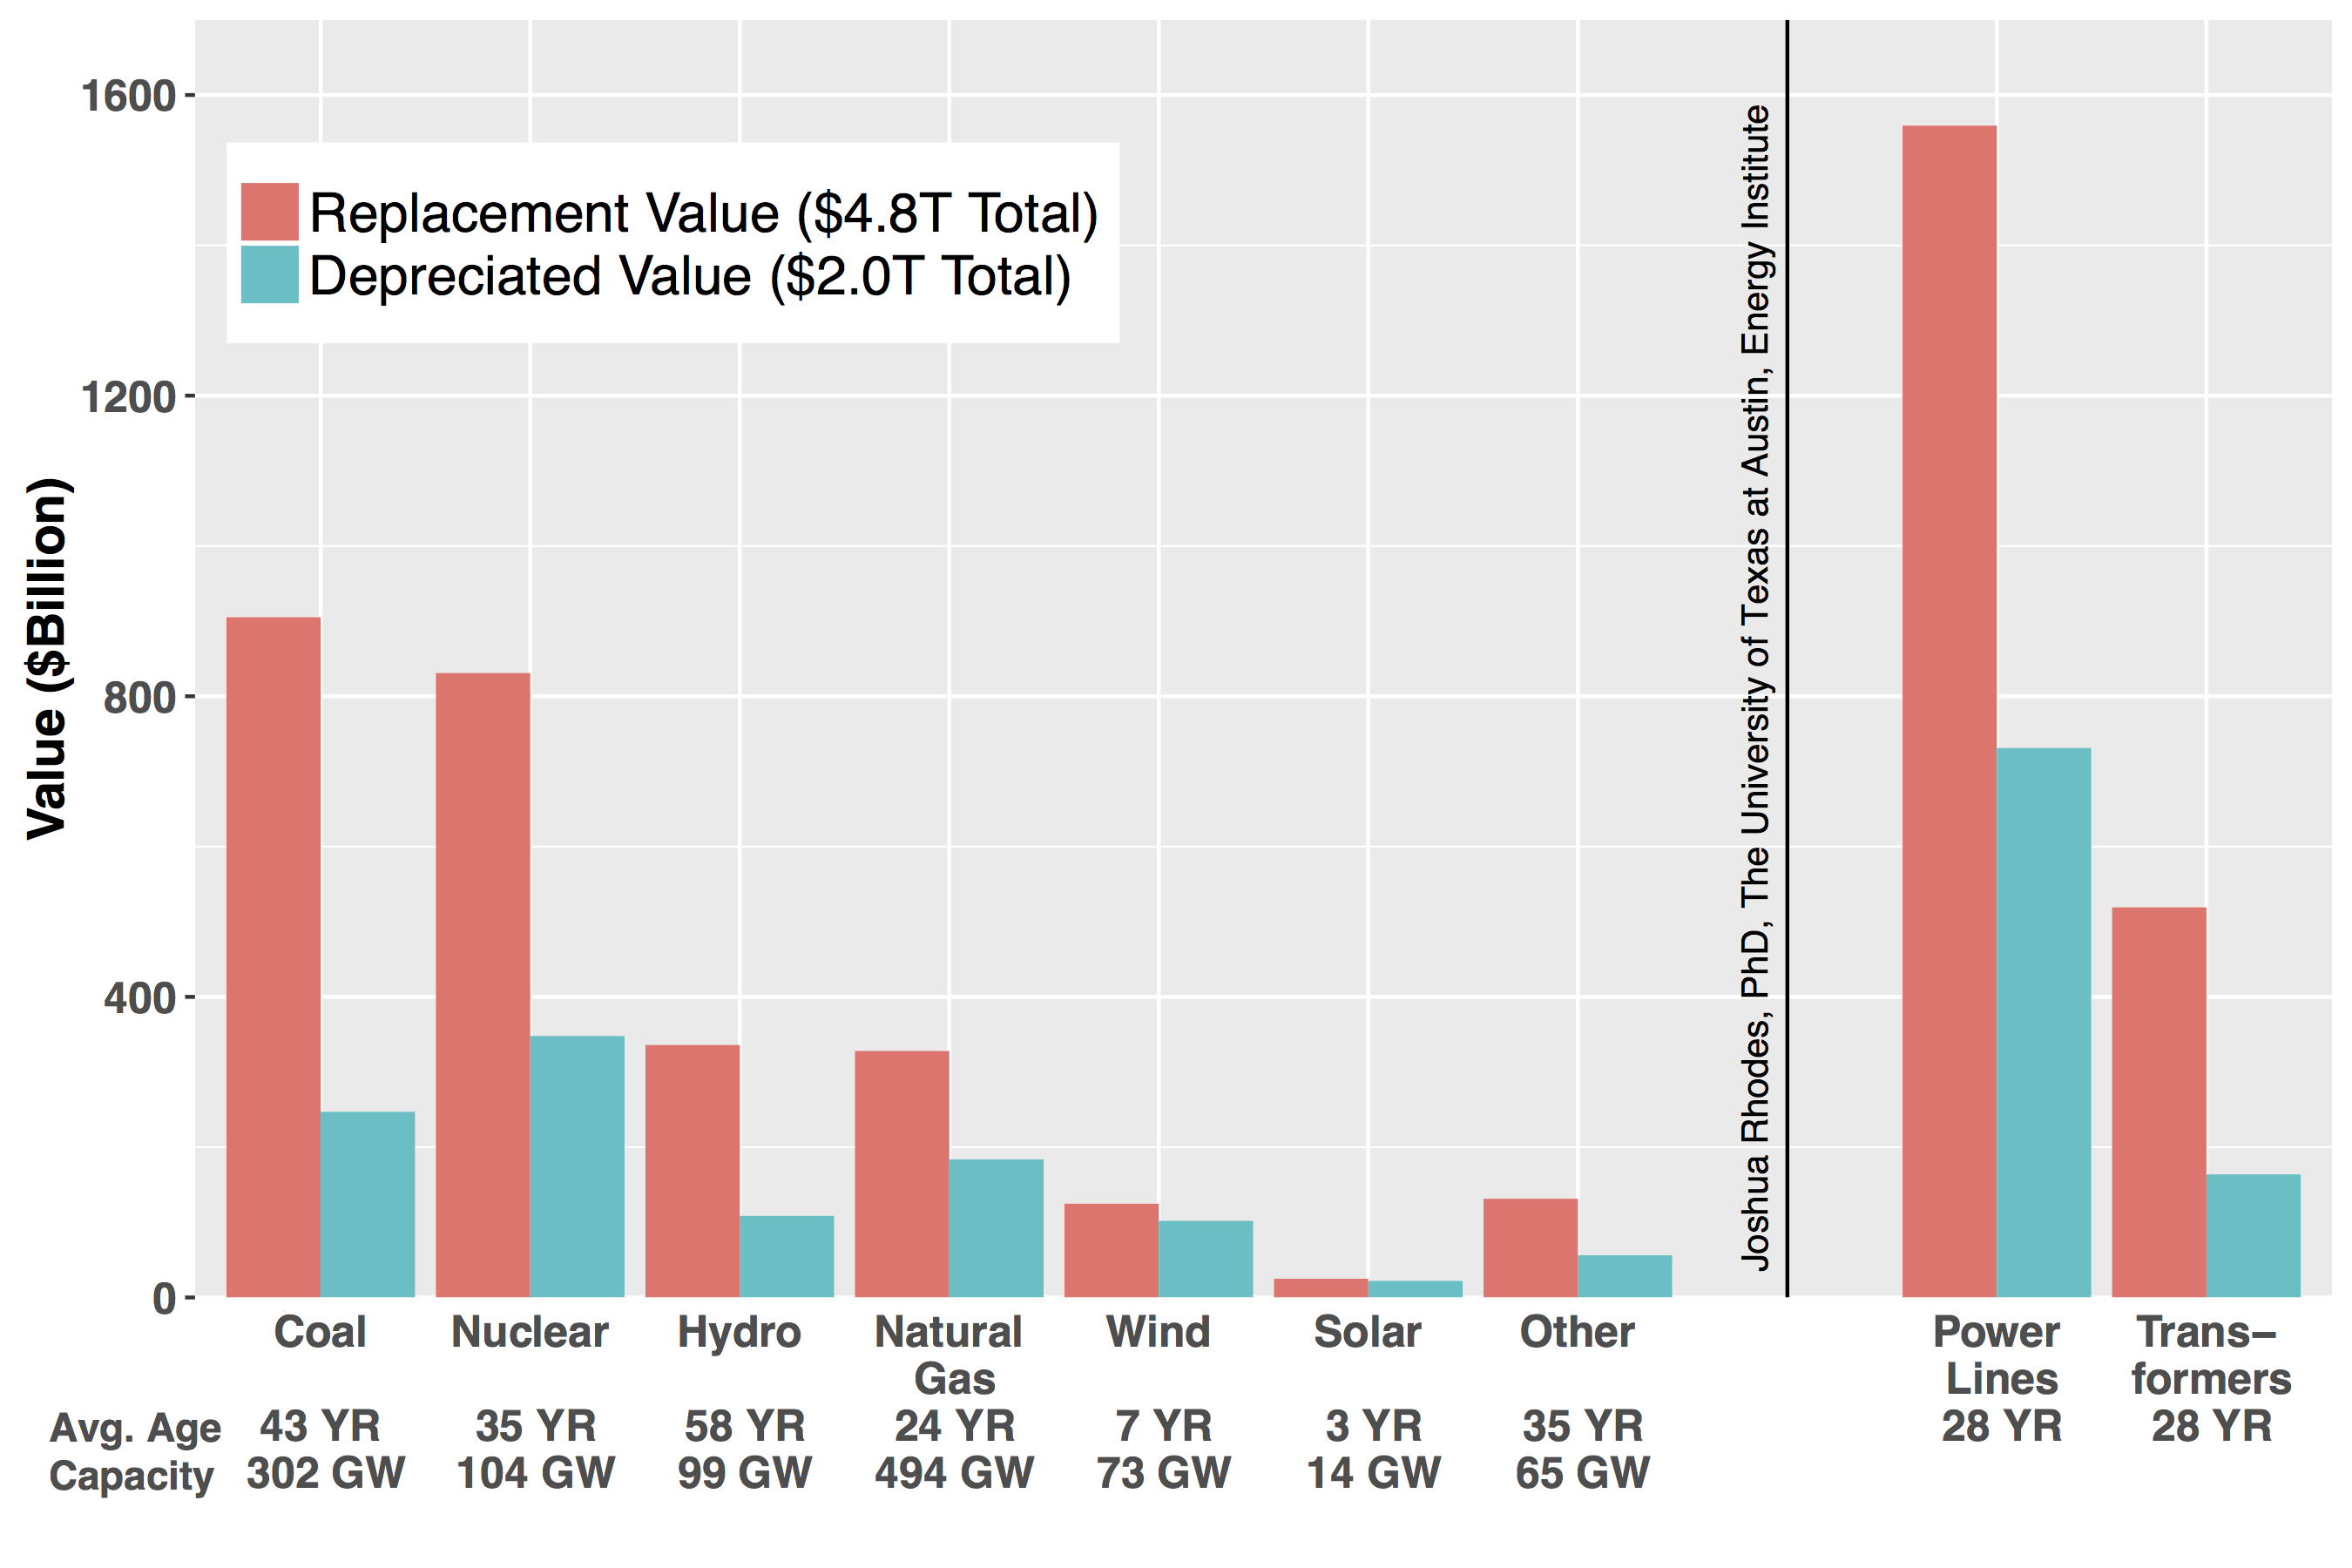 Breakdown Of The Replacement And Depreciated Value Of U.S. Electric  Infrastructure. Many Of The Underlying Data Sources, Including From The  EIA, ...